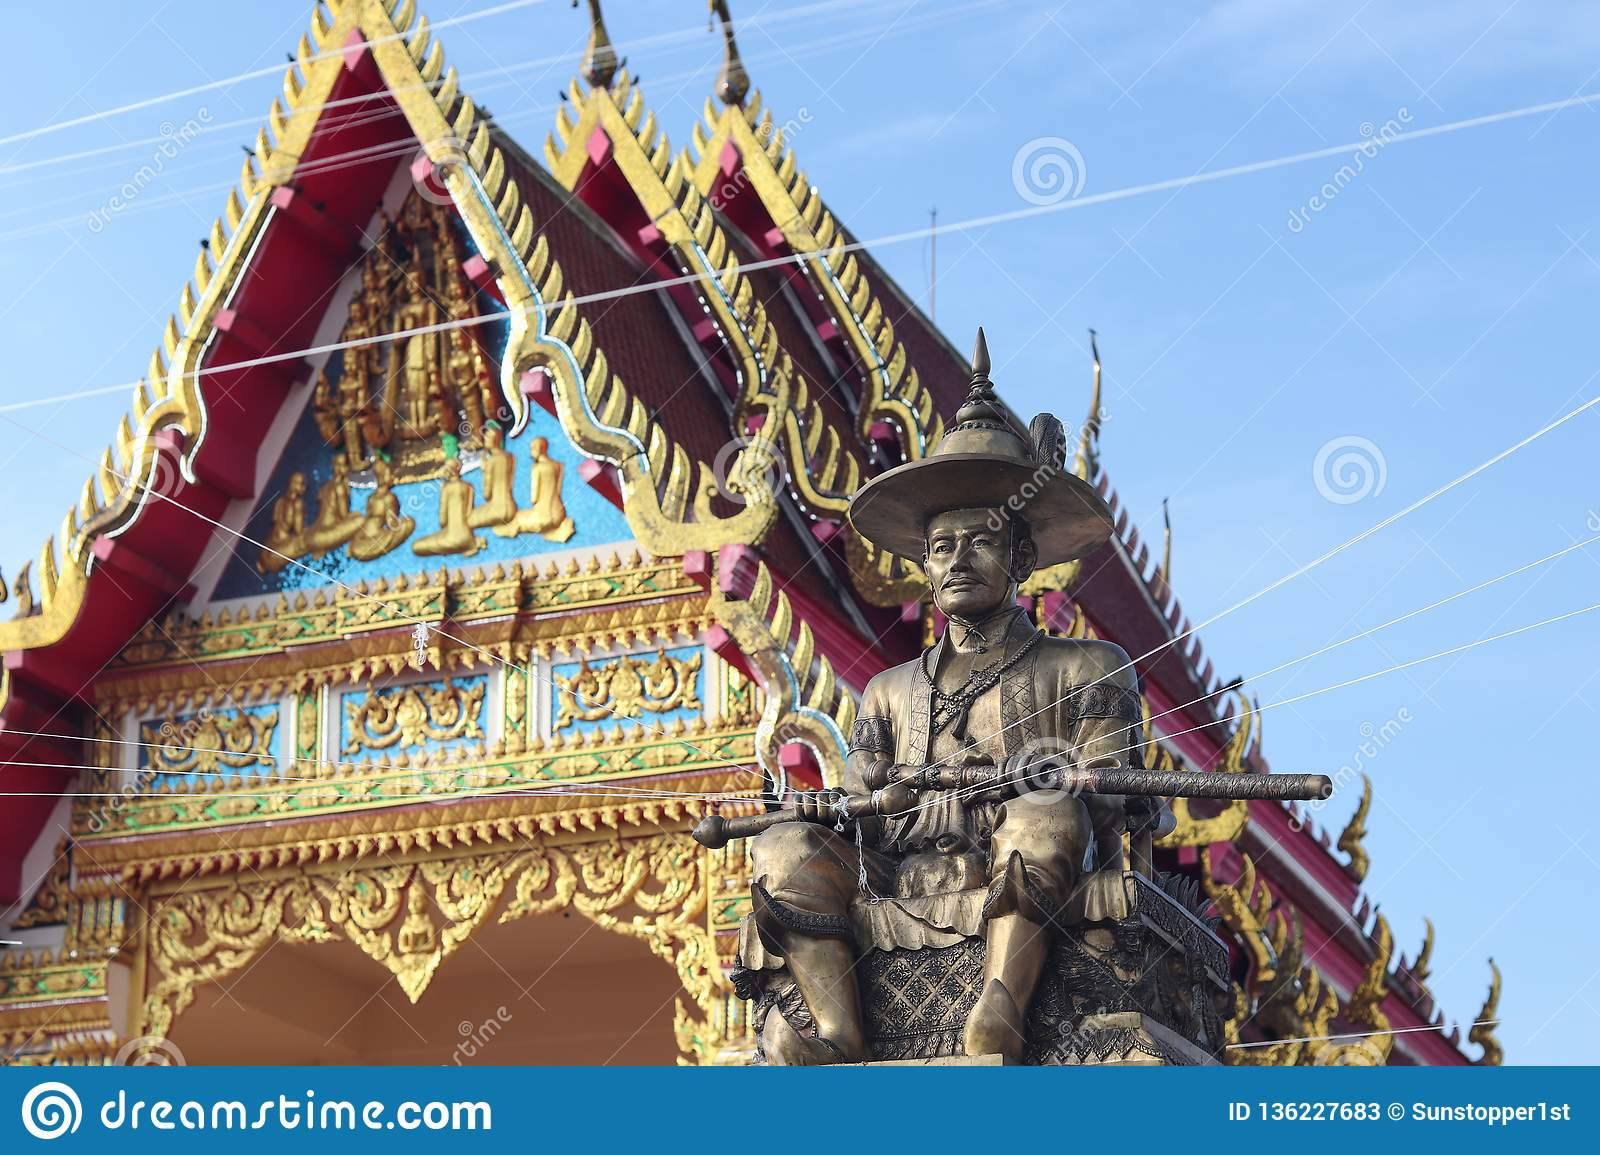 King Taksin the Great in Pattani province, Thailand